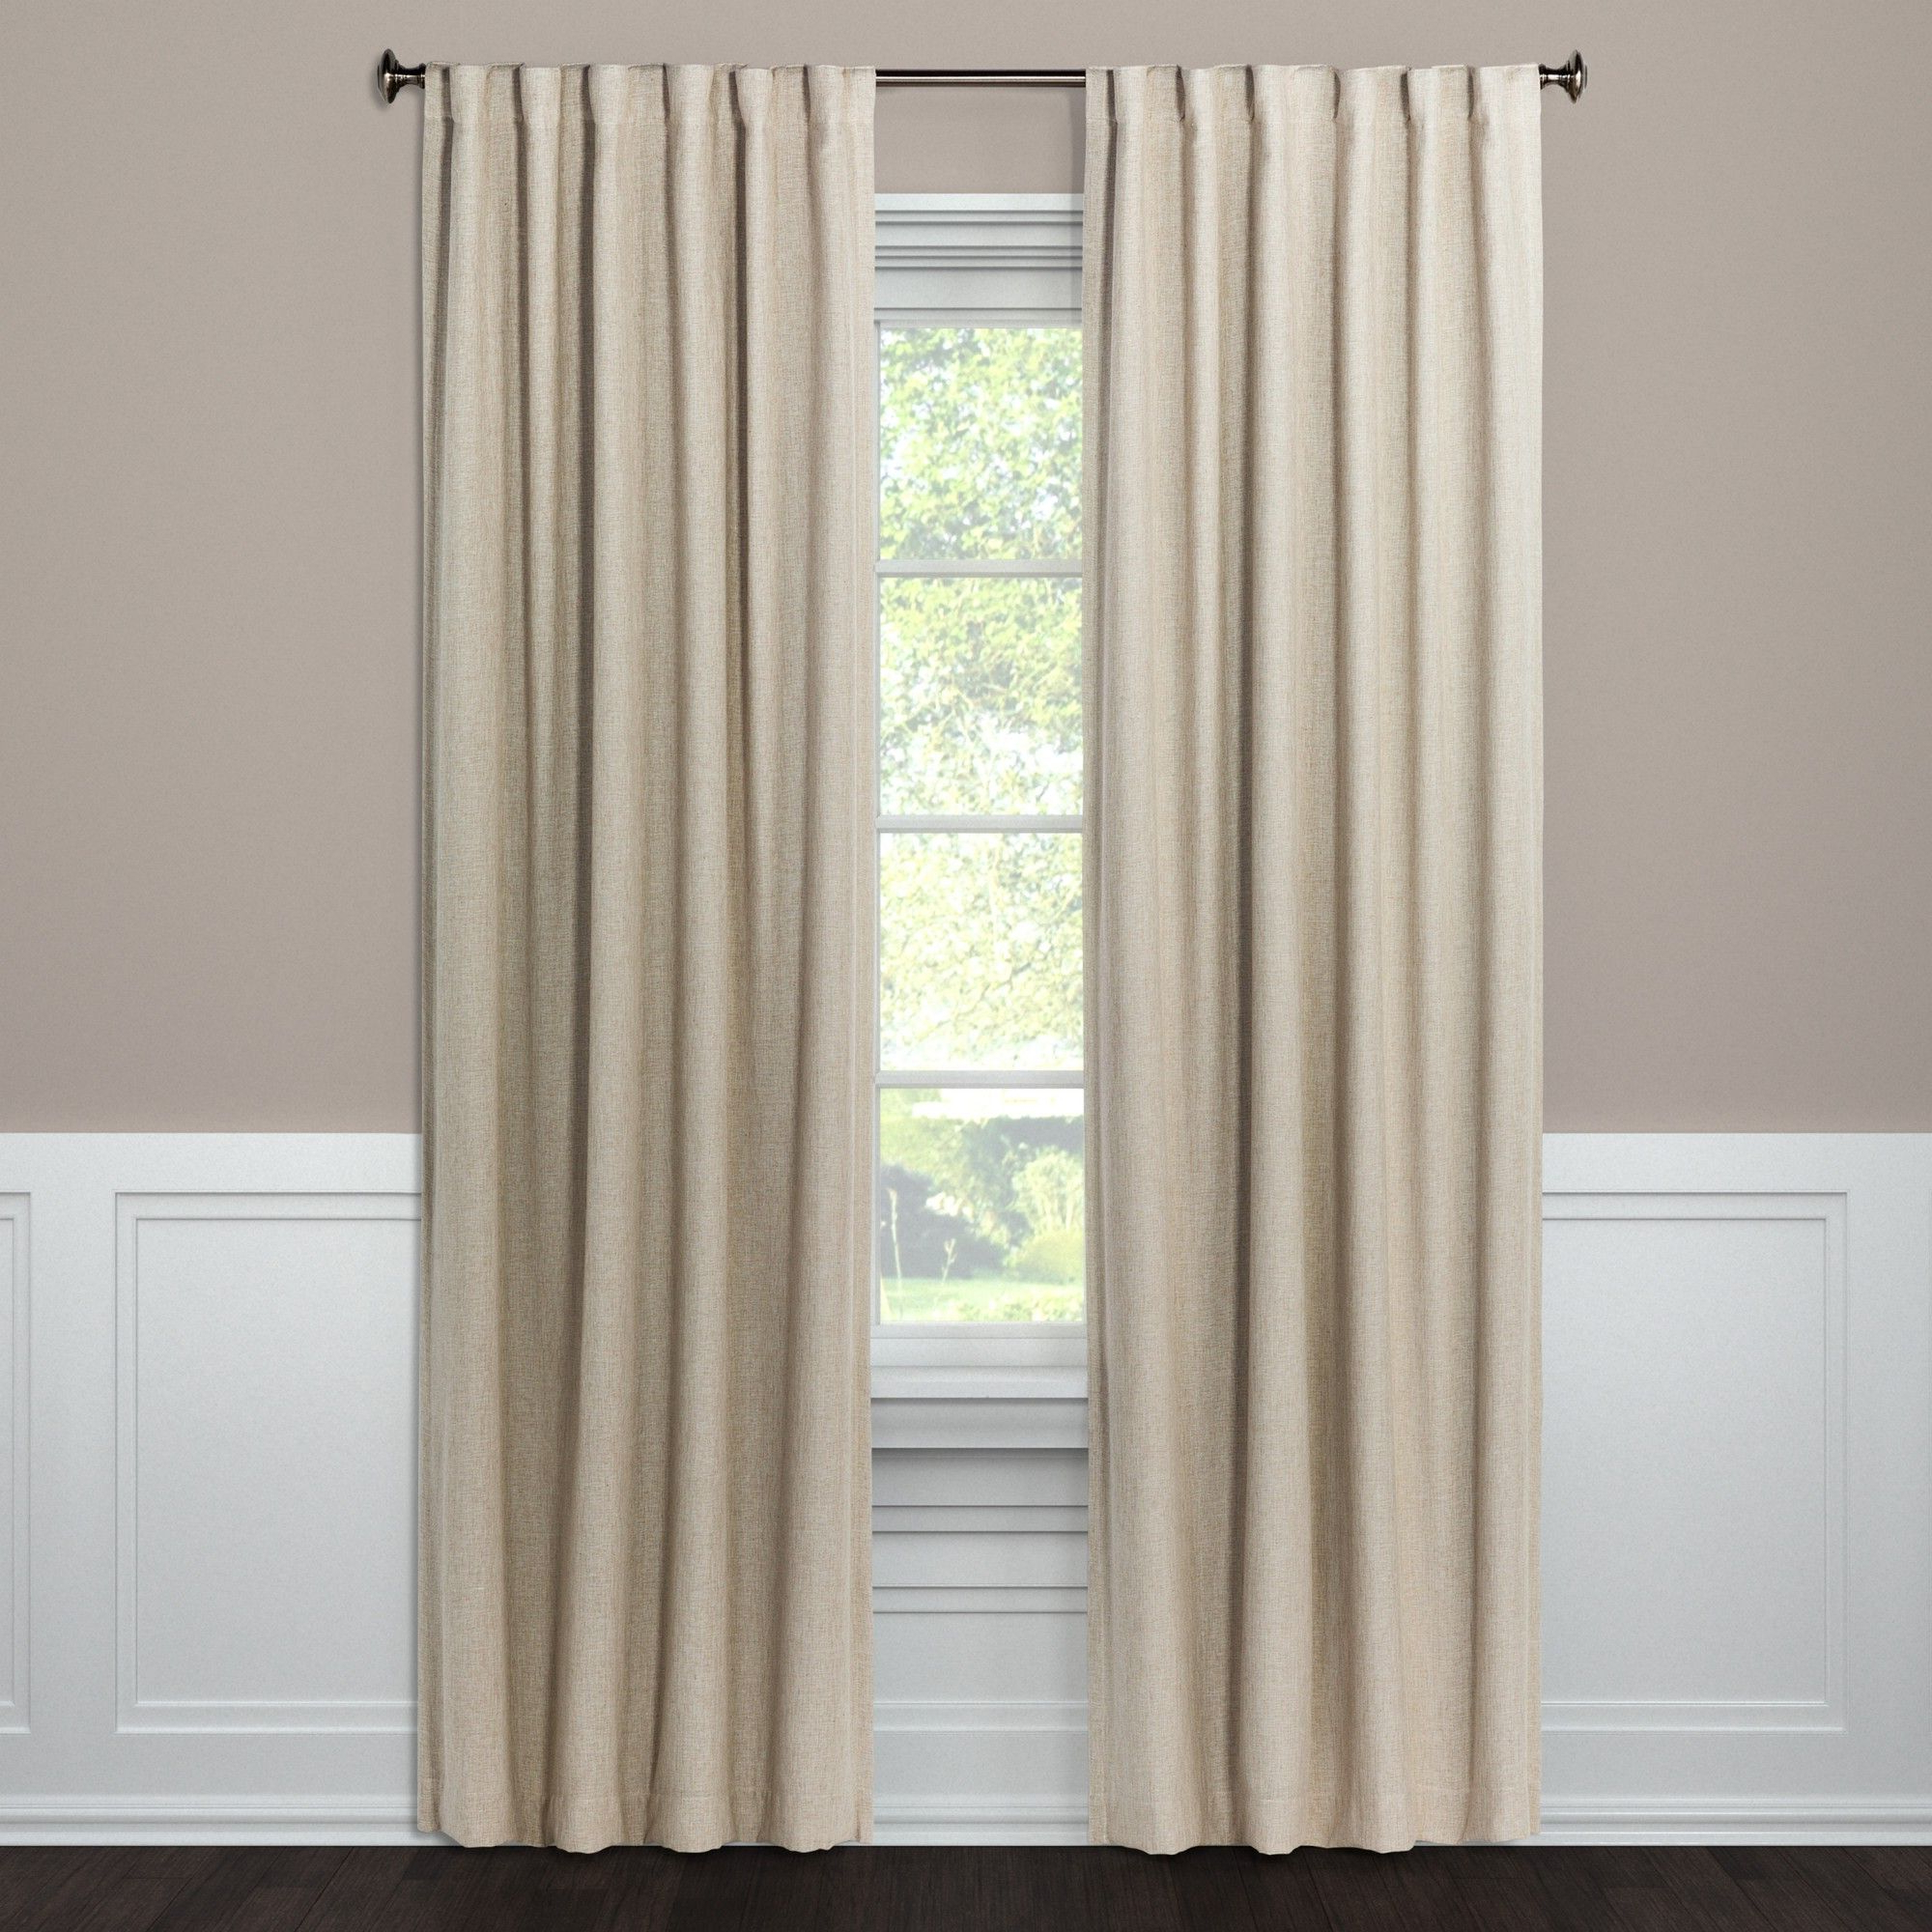 Recent Blackout Curtain Panel Aruba White 108 – Threshold, Sour For Archaeo Washed Cotton Twist Tab Single Curtain Panels (View 20 of 20)